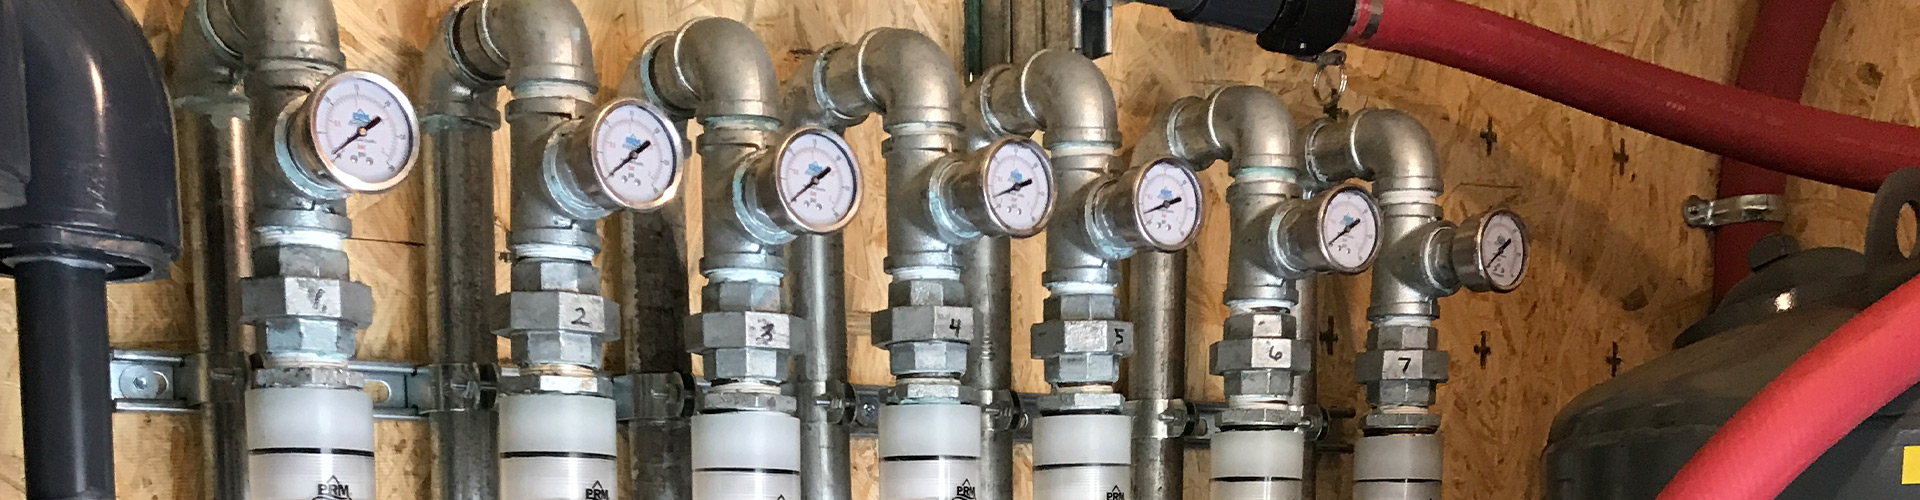 External view of a remediation system build, specifically a row of silver pipes fitted with pressure gauges.